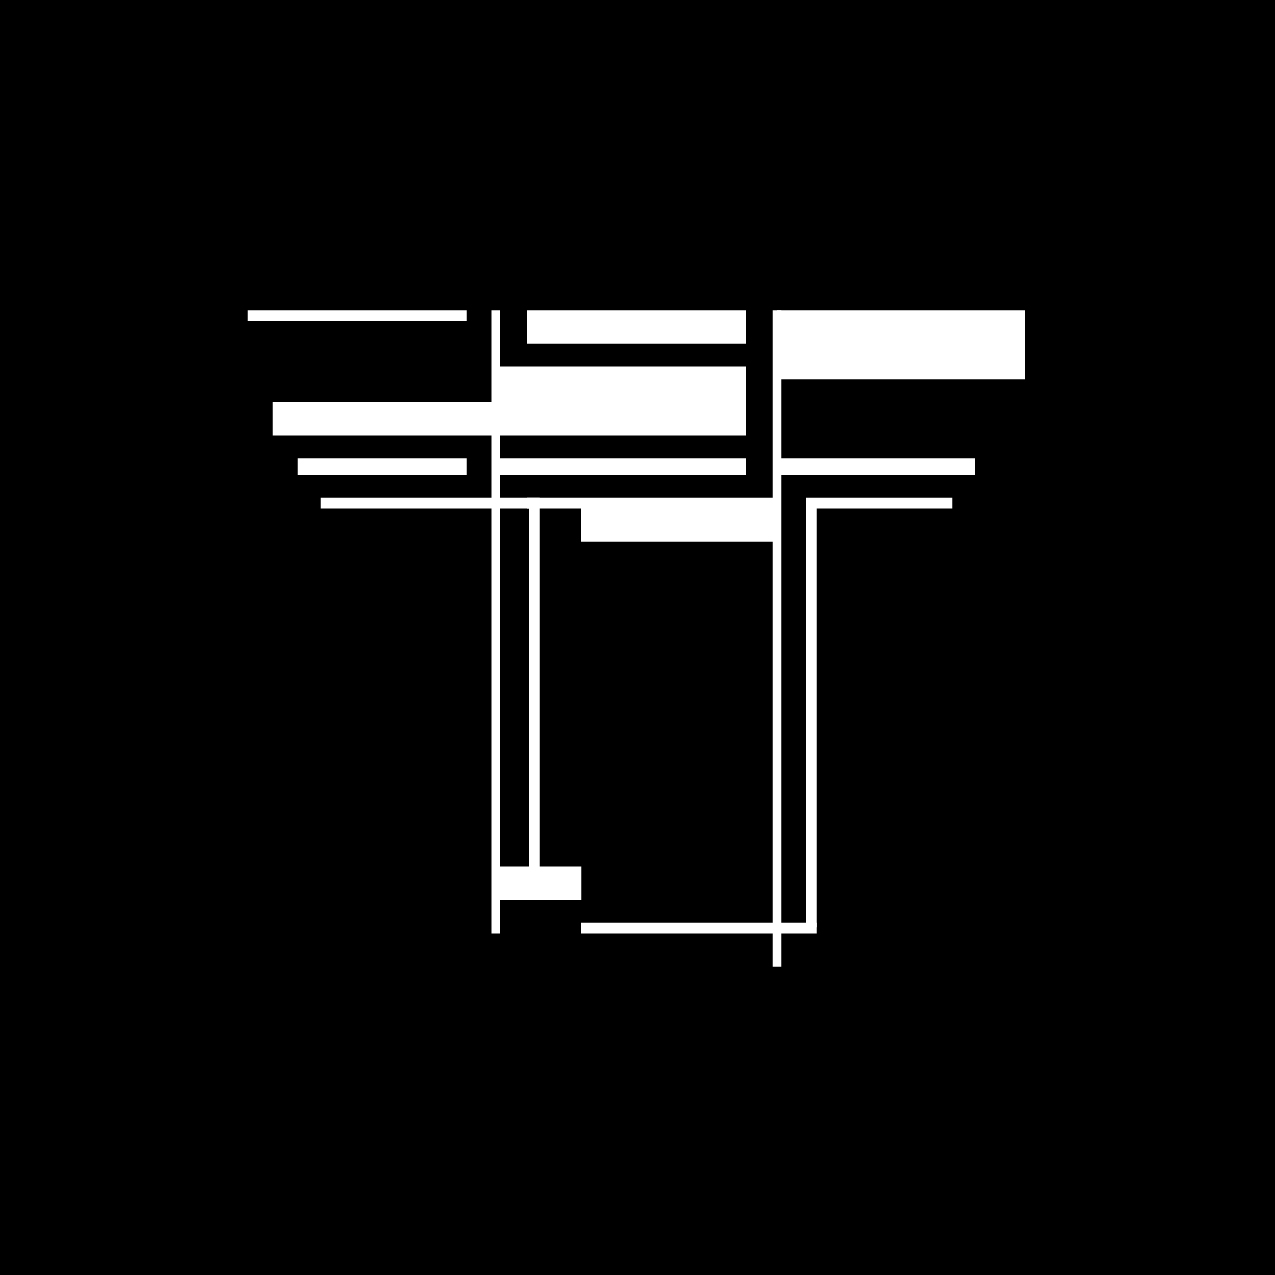 Letter T3 Design by Furia